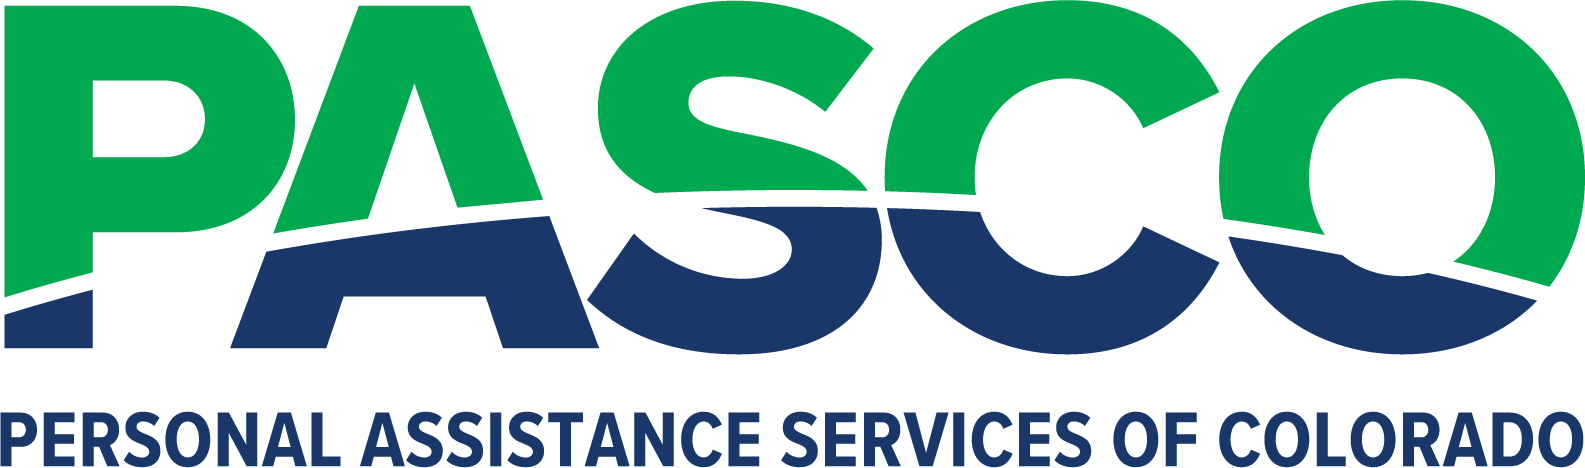 PASCO (Personal Assistance Services of Colorado)